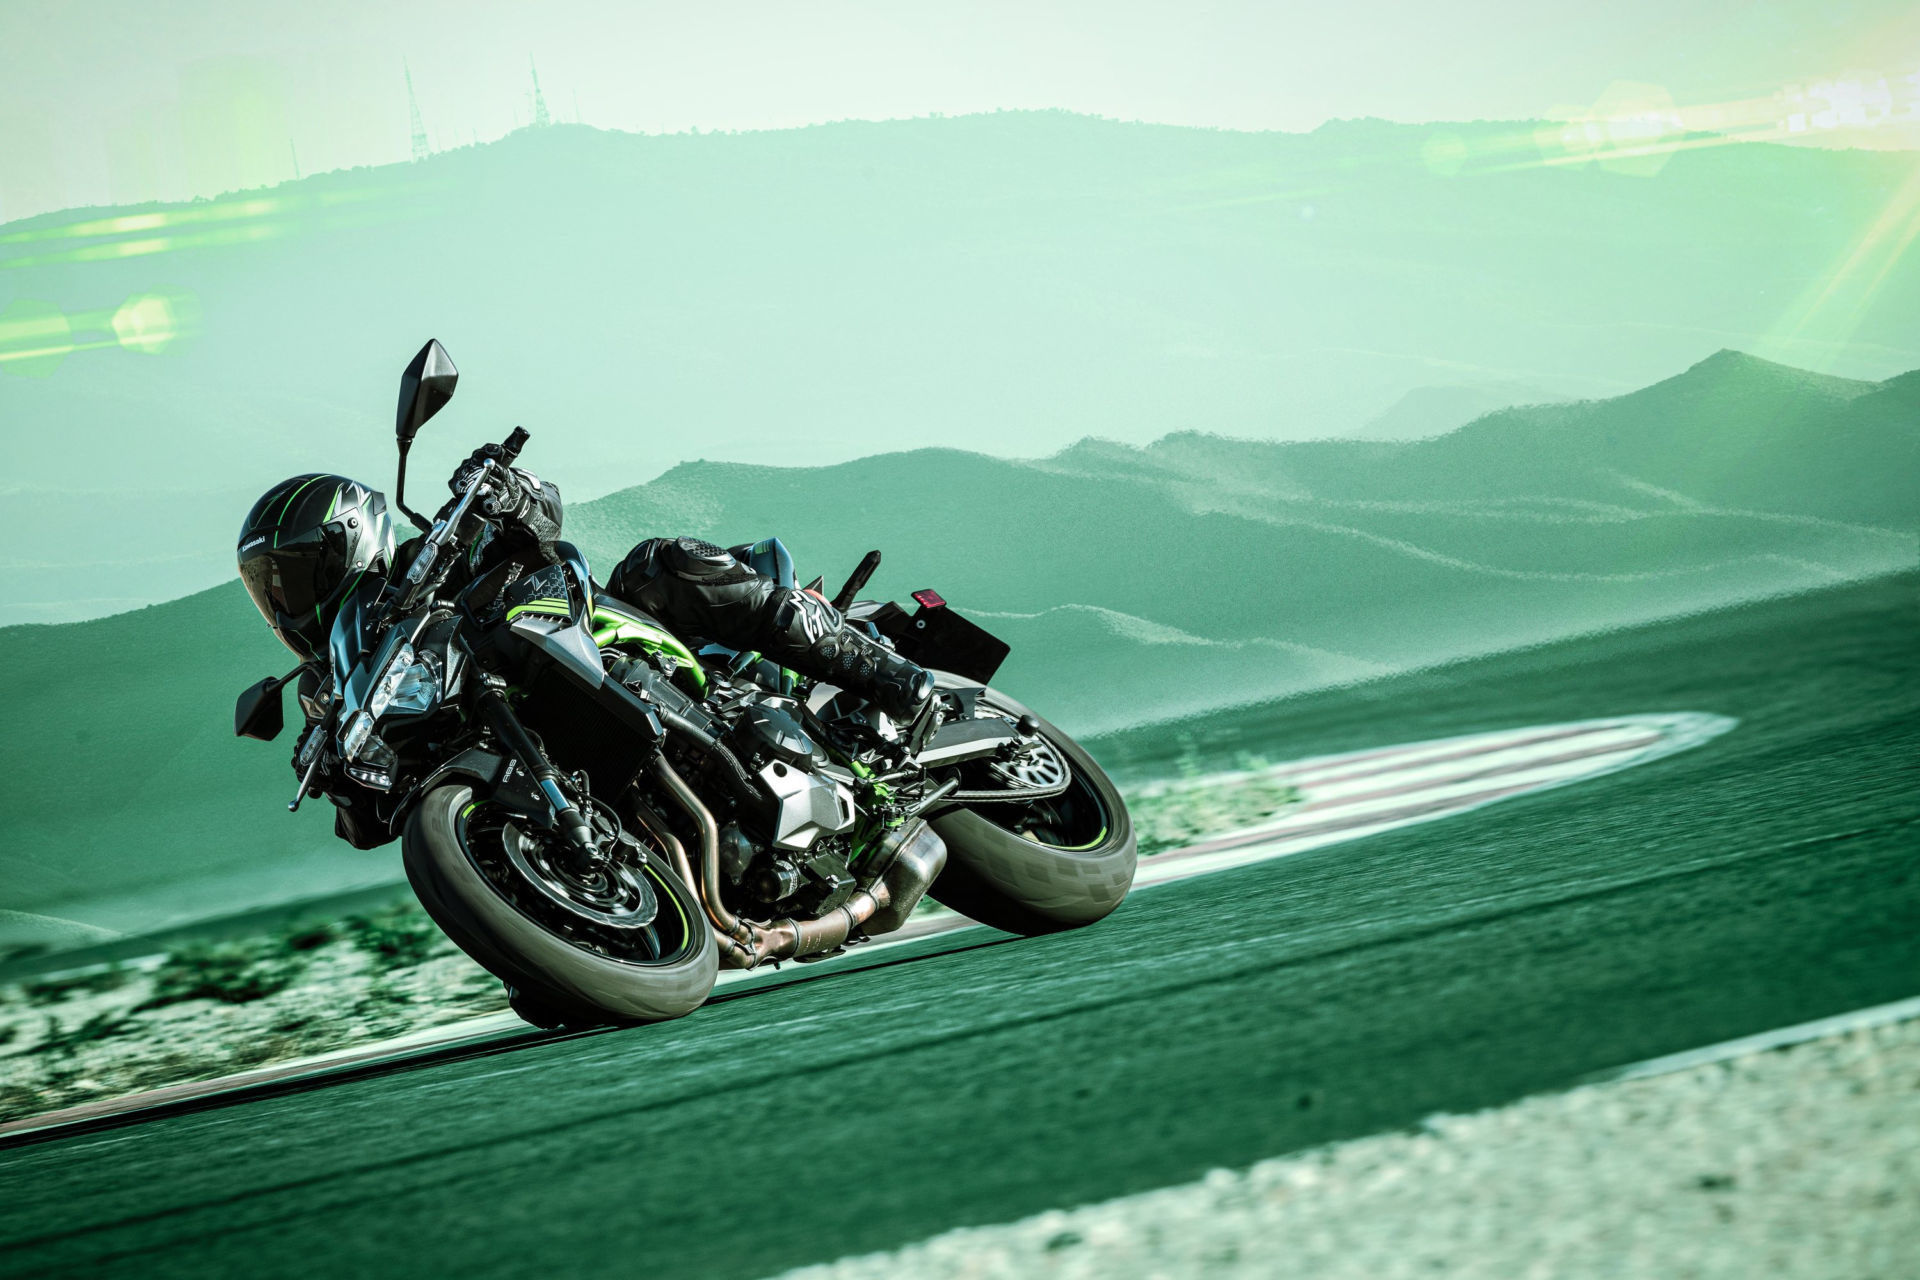 Kawasaki's new 2020 Z900 ABS at speed. Photo courtesy of Kawasaki Motors Corp., U.S.A.